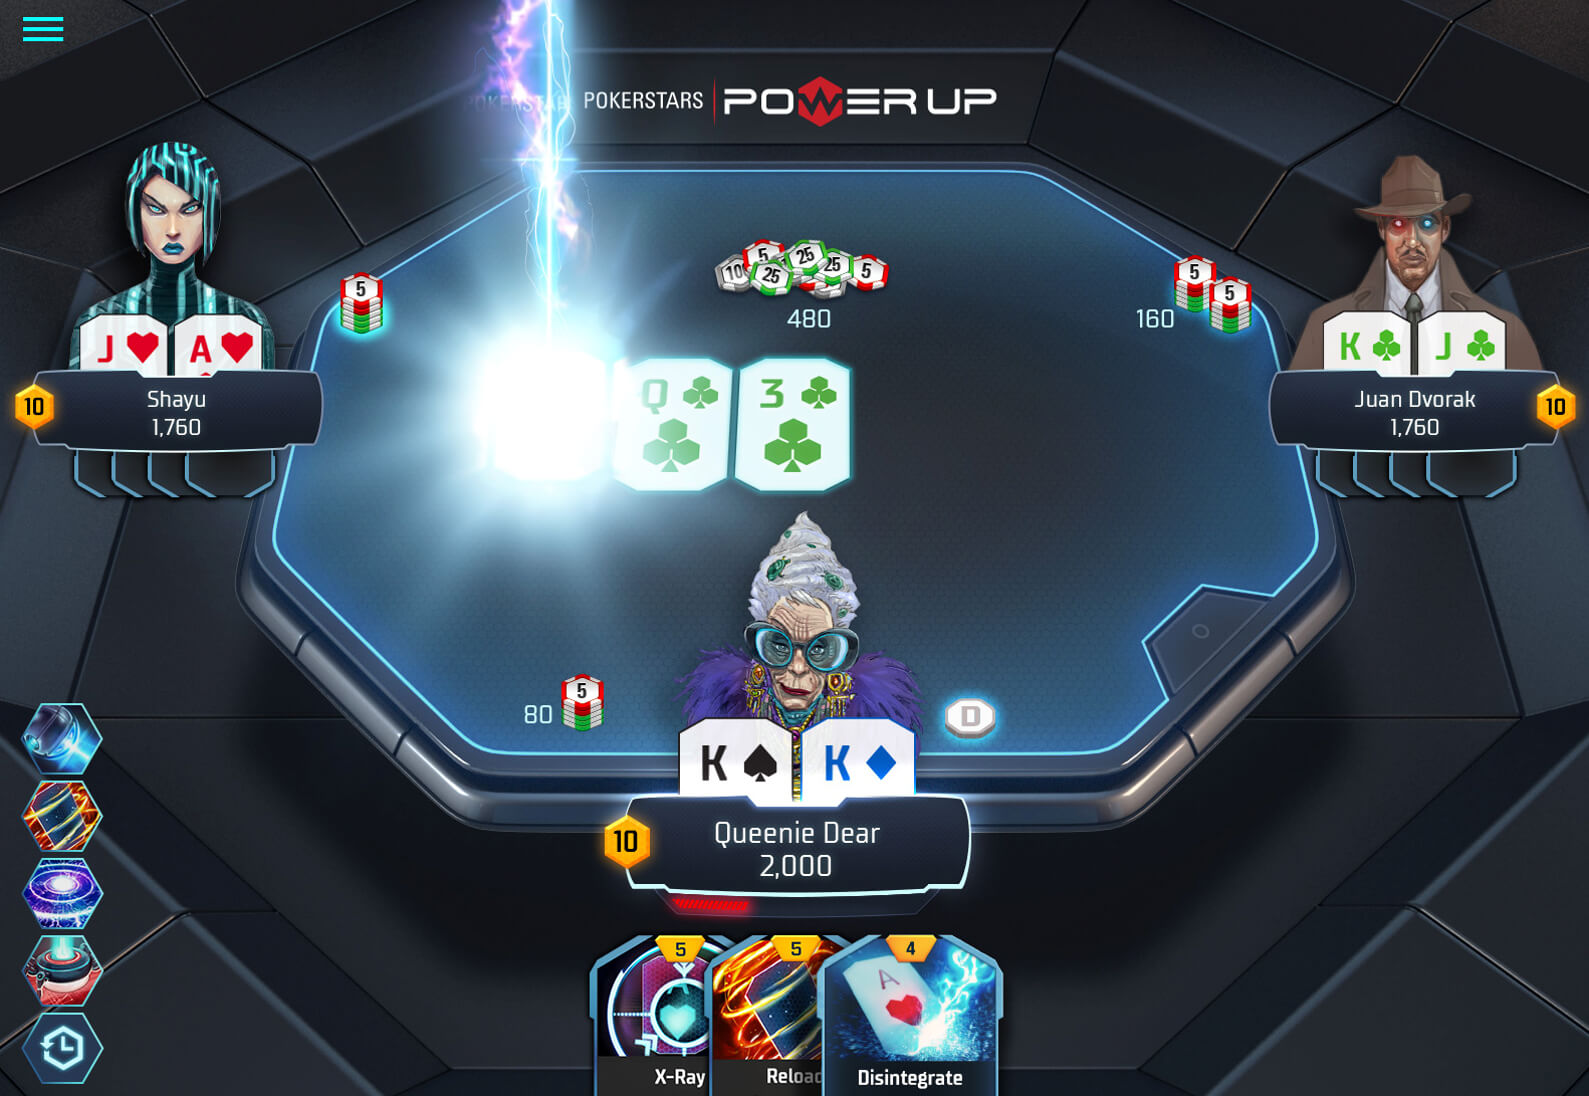 Our Games. Two cards, four cards or five cards? More? However many cards you like to hold, we've the online poker game for you. Texas Hold'em is the world's favorite card game, but there are so many more poker games to try out at Full Tilt.